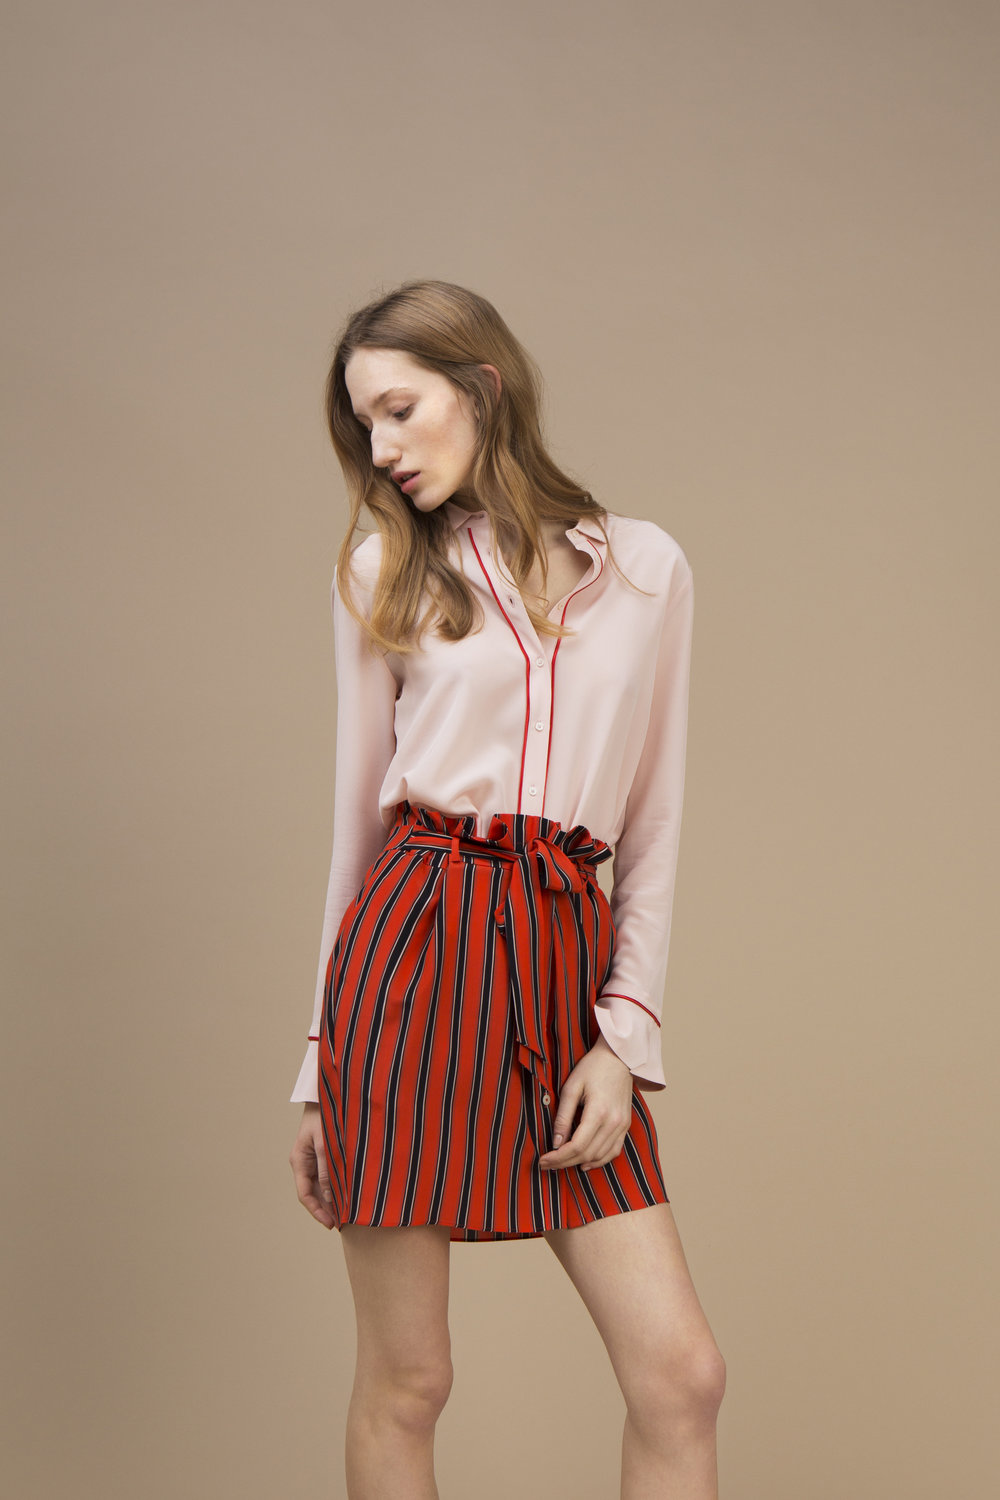 Crepe silk Small collar shirt — Soft Pink and Short waistband skirt in crepe silk — Rock Candy